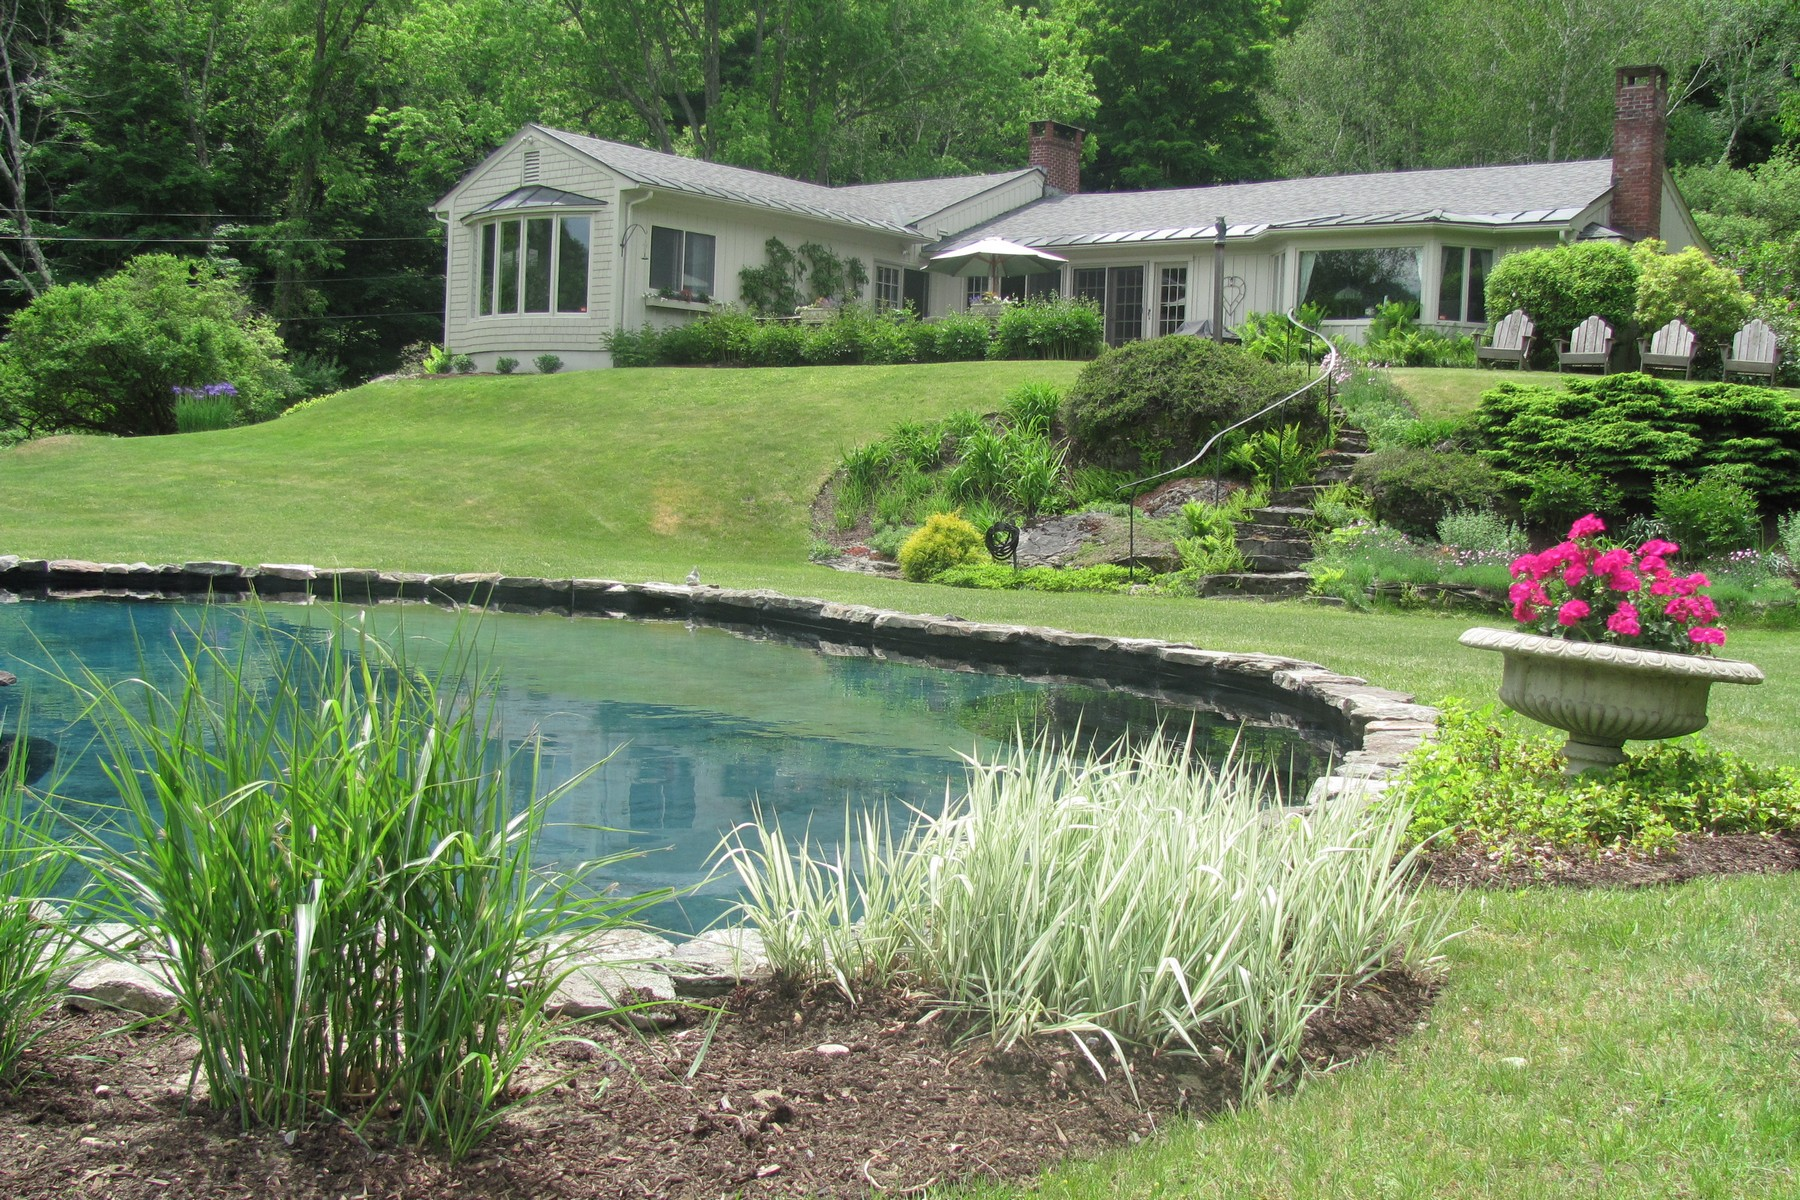 Single Family Home for Sale at Spring Hill Elegance 143 Spring Hill Ln Dorset, Vermont, 05251 United States